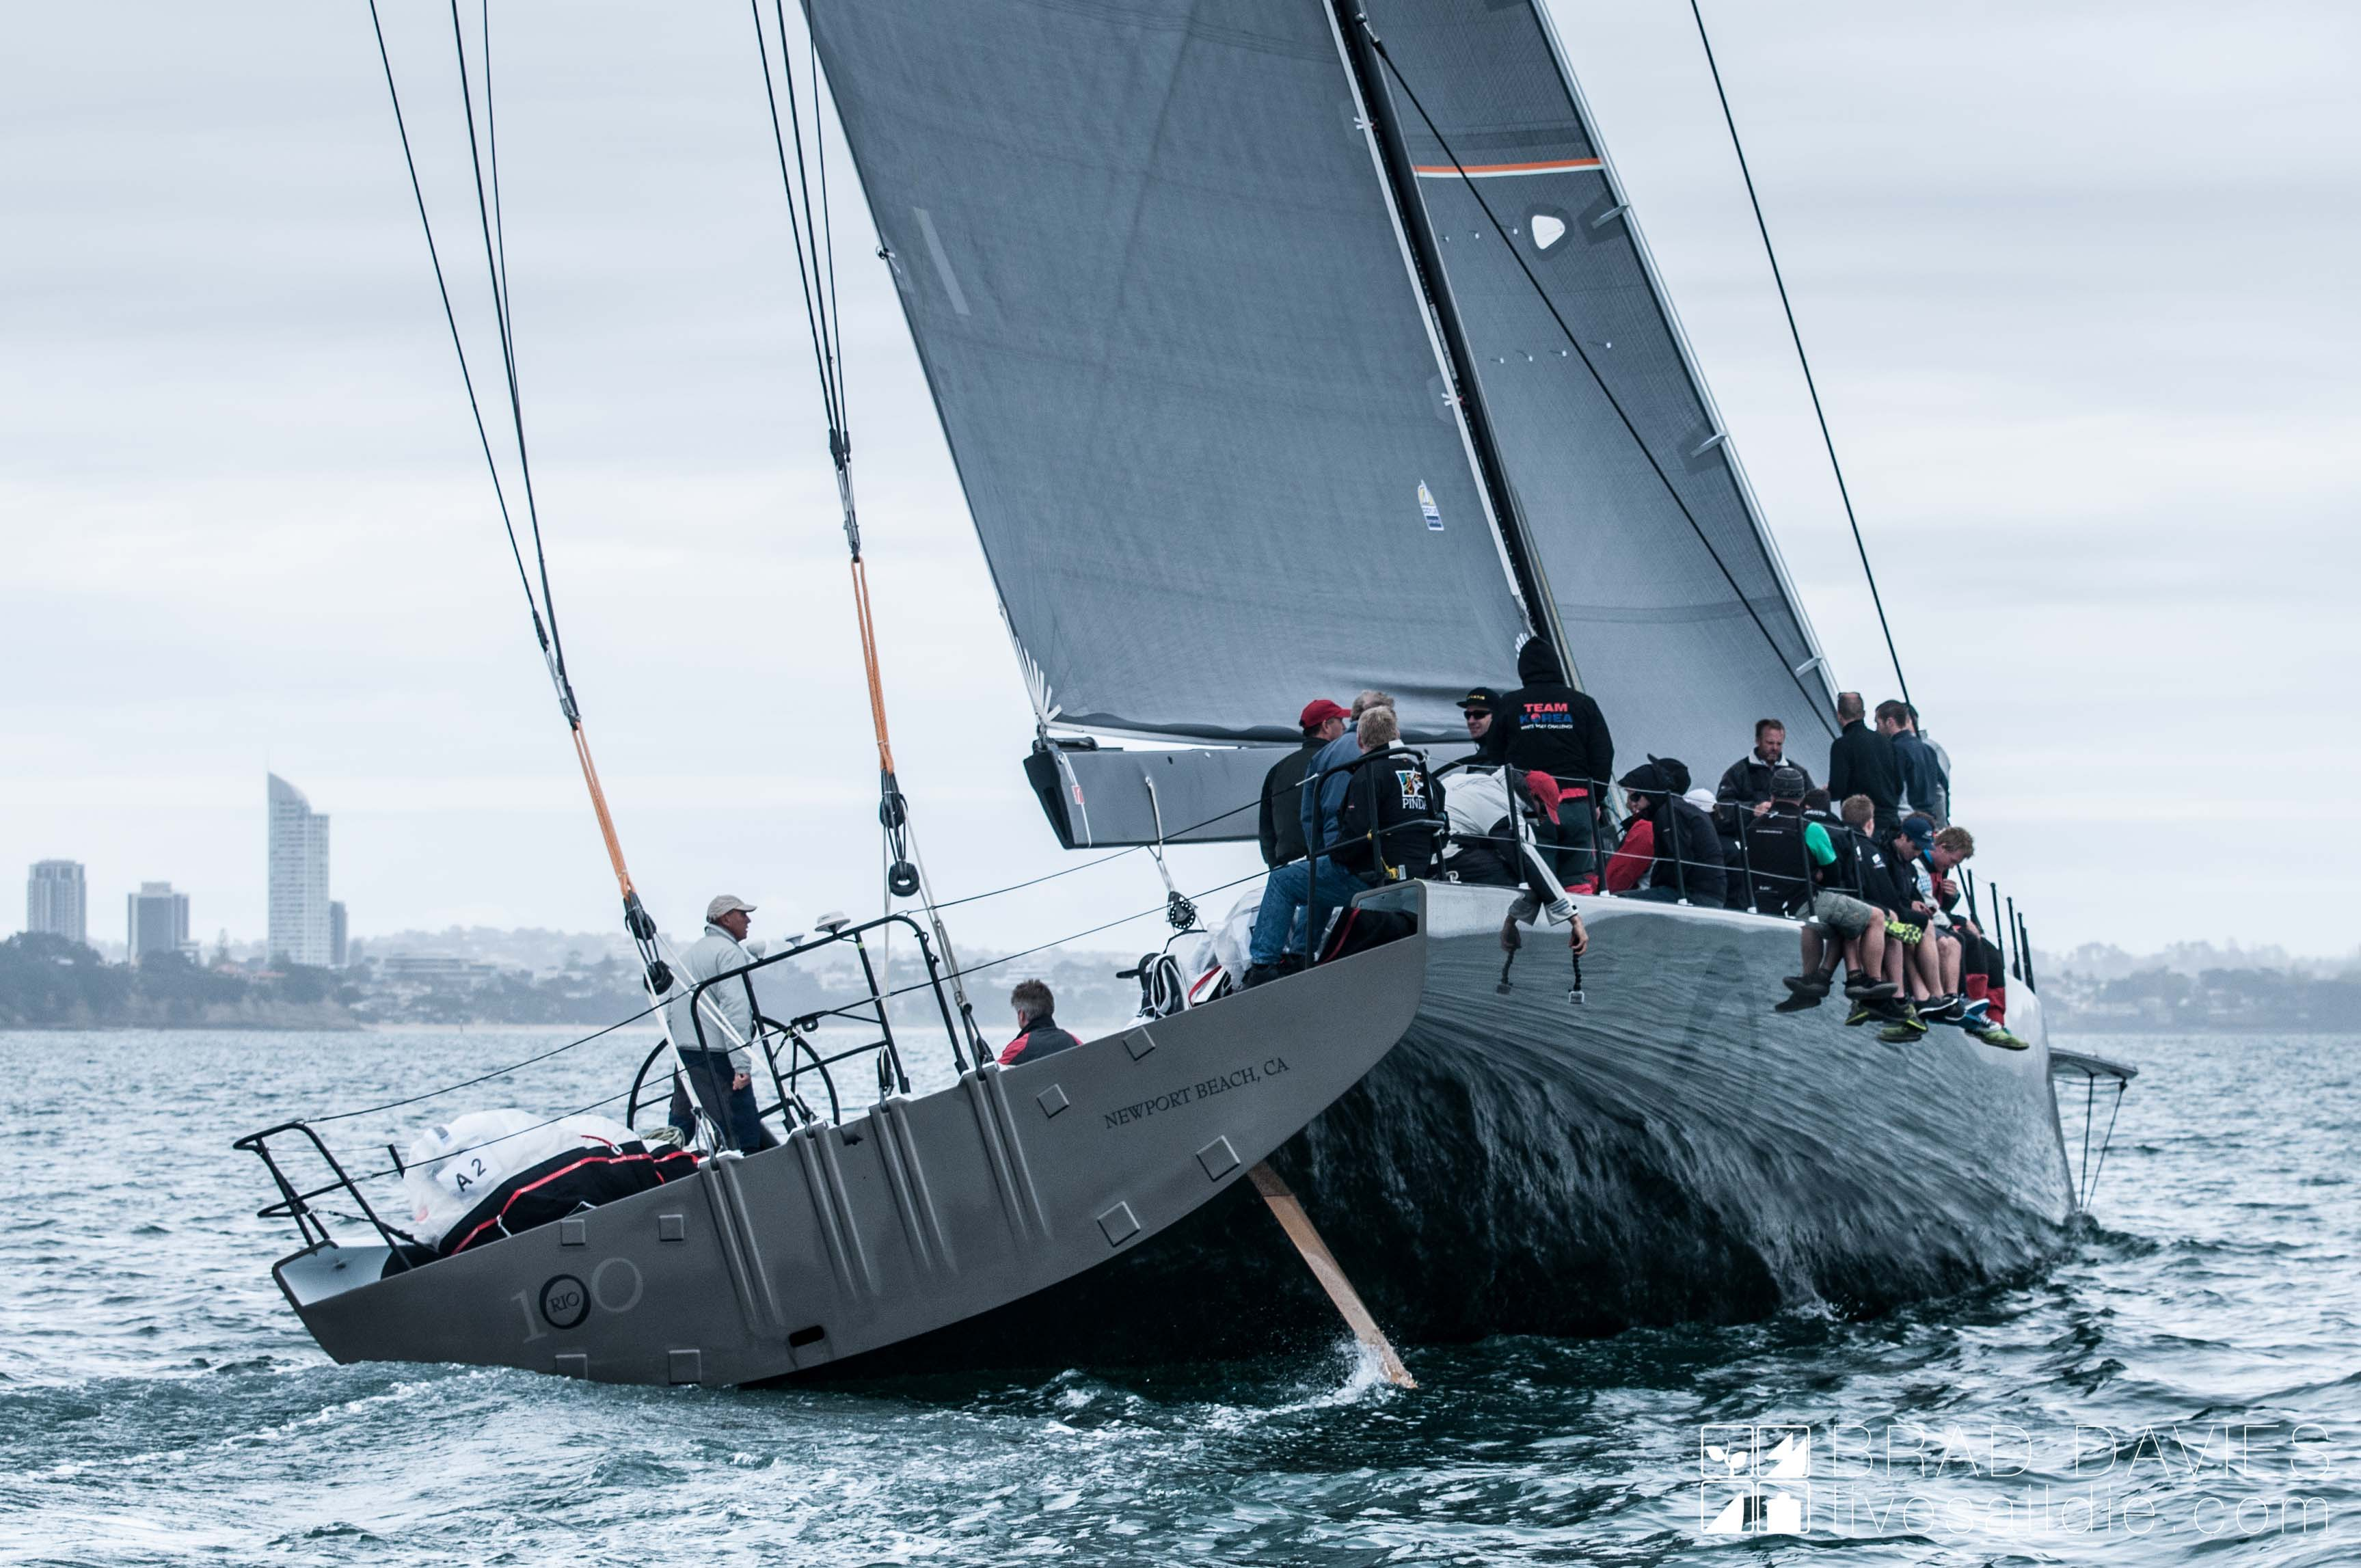 Stratis Ice Sails Doyle Sails Italy